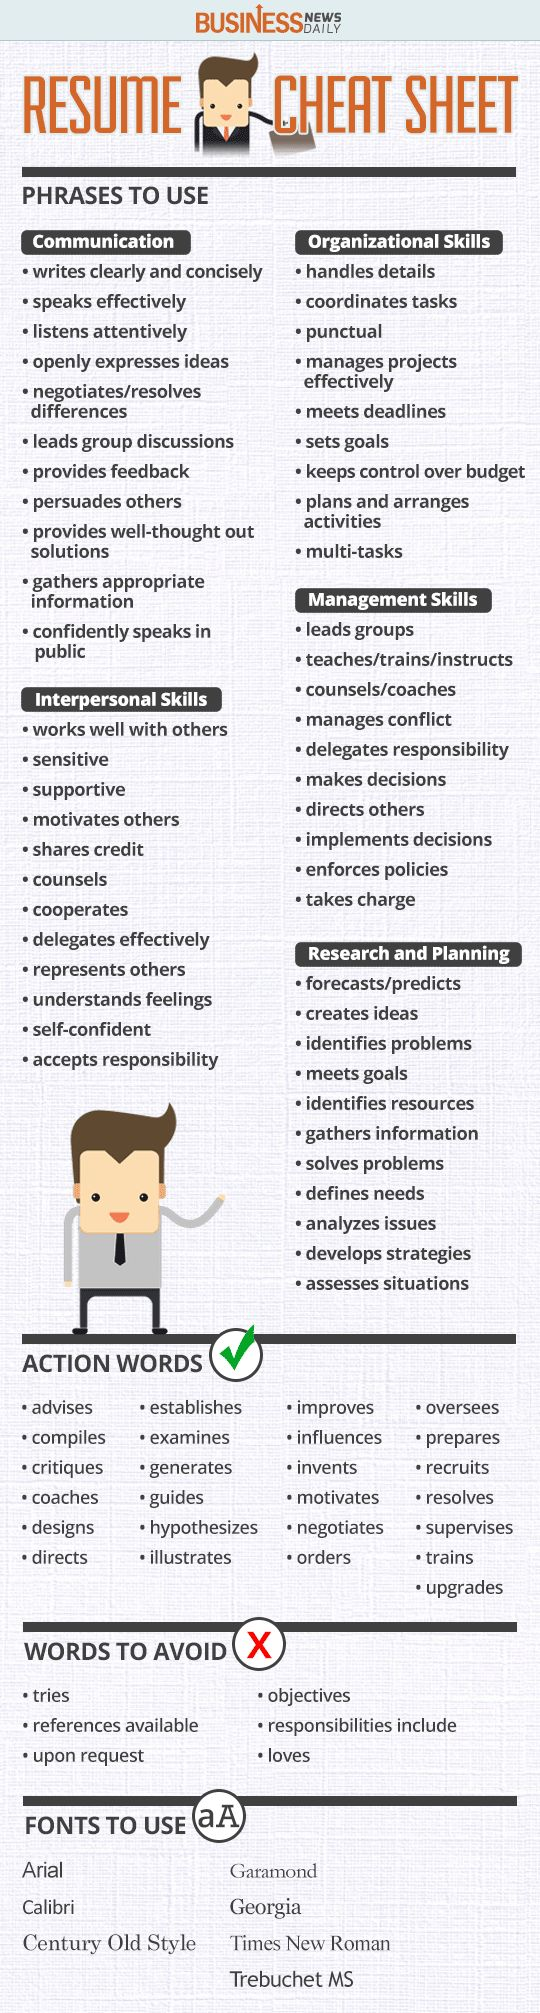 Opposenewapstandardsus  Marvelous  Ideas About Resume On Pinterest  Cv Format Resume Cv And  With Fetching Resume Cheat Sheet Infographic Andrews Almost Done With A Complete Unit On Employment Which With Enchanting Resume Temple Also Download Resume Format In Addition Resume Template High School Student And Margins On A Resume As Well As  Page Resume Examples Additionally Resume Topics From Pinterestcom With Opposenewapstandardsus  Fetching  Ideas About Resume On Pinterest  Cv Format Resume Cv And  With Enchanting Resume Cheat Sheet Infographic Andrews Almost Done With A Complete Unit On Employment Which And Marvelous Resume Temple Also Download Resume Format In Addition Resume Template High School Student From Pinterestcom